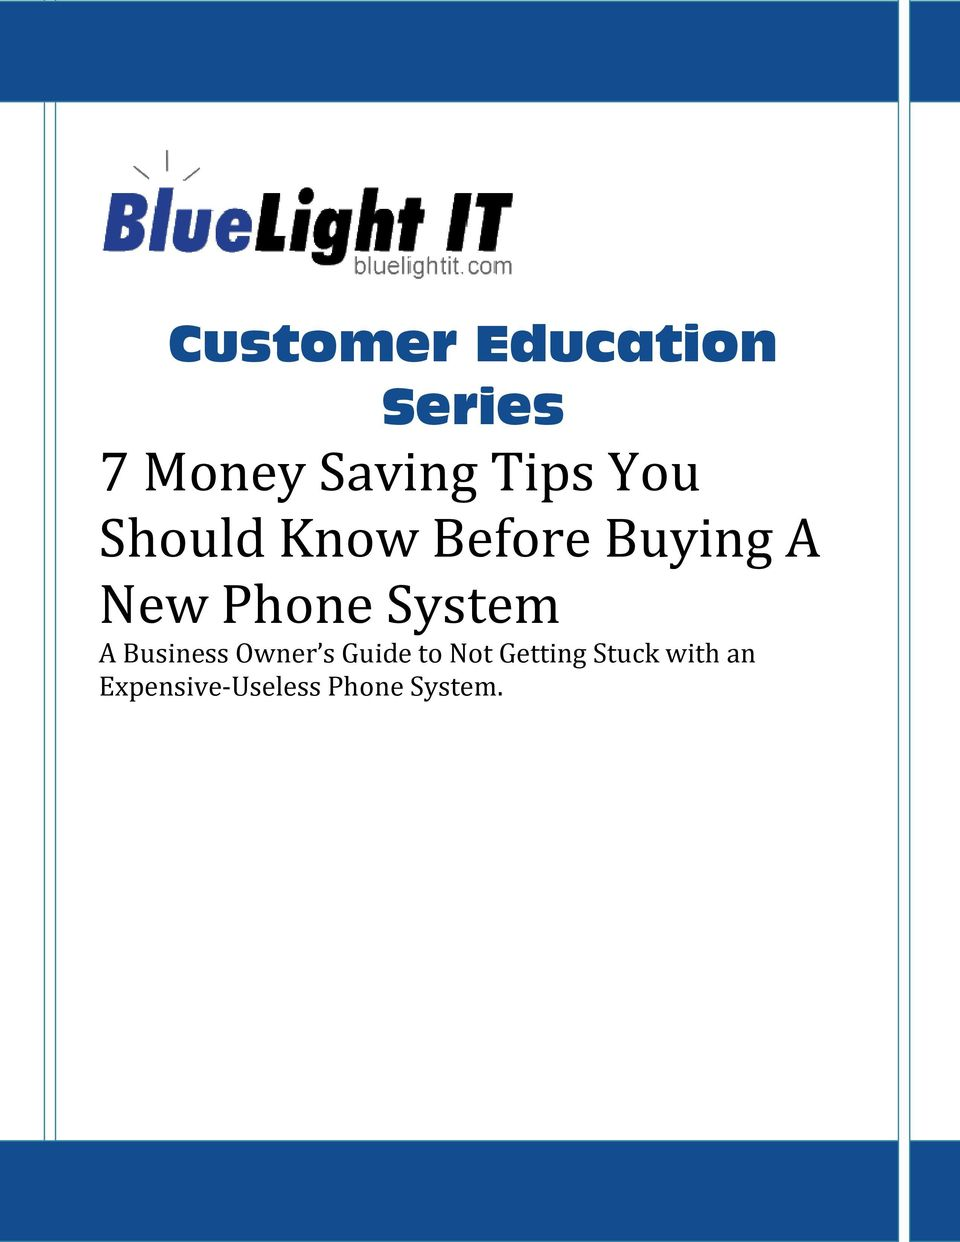 Phone System A Business Owner s Guide to Not